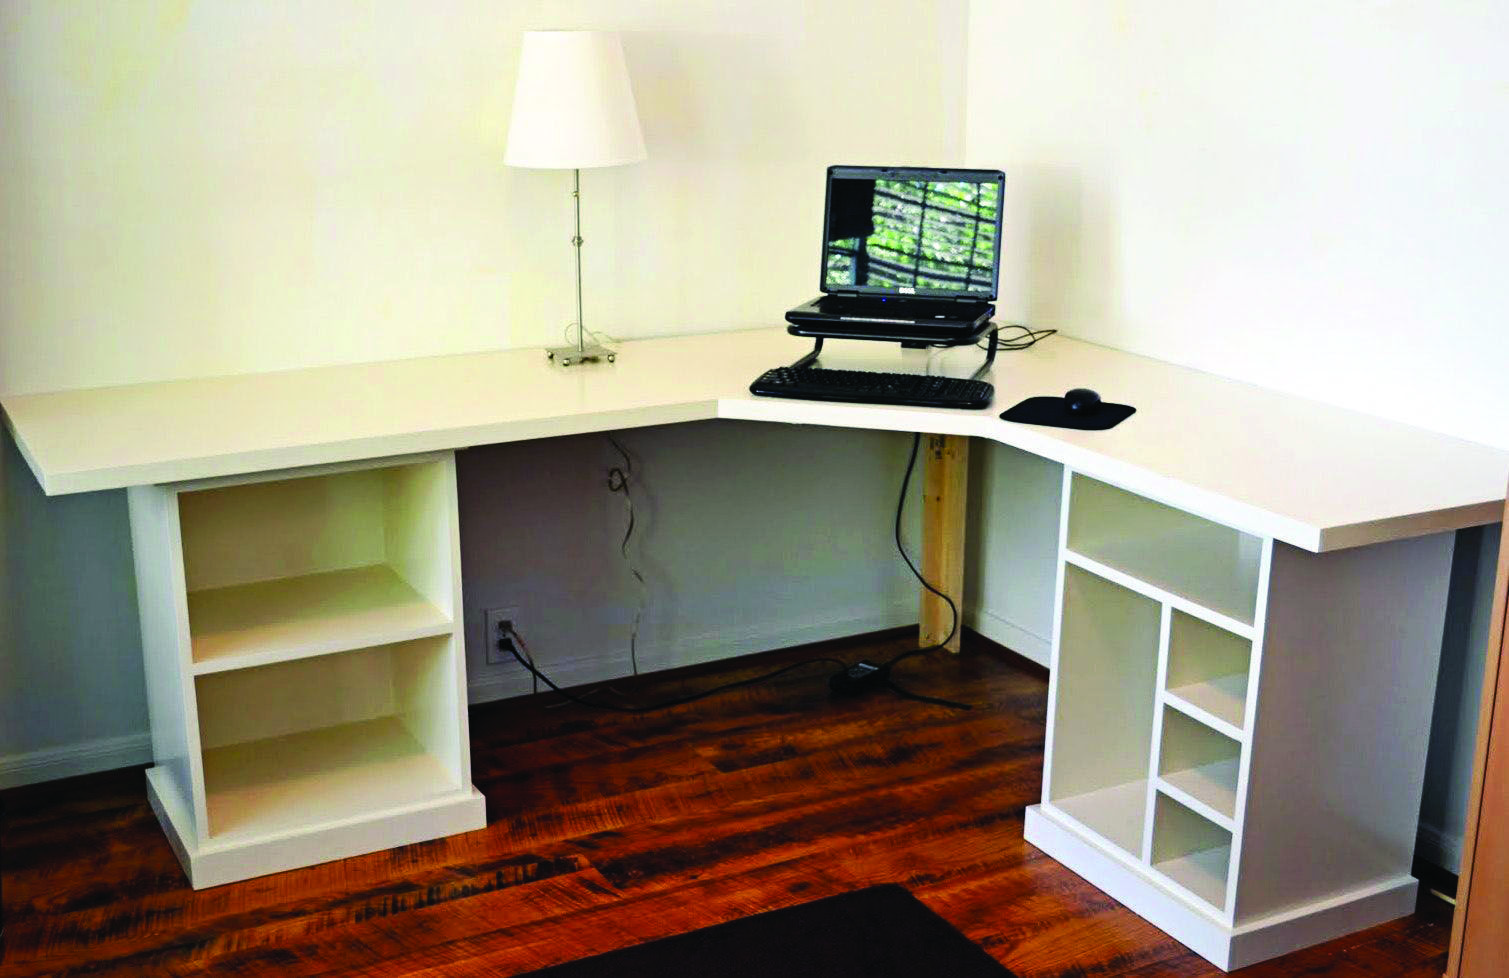 17 Diy Corner Desk Ideas To Build For Your Office Diy Corner Desk Diy Desk Plans Modular Desk